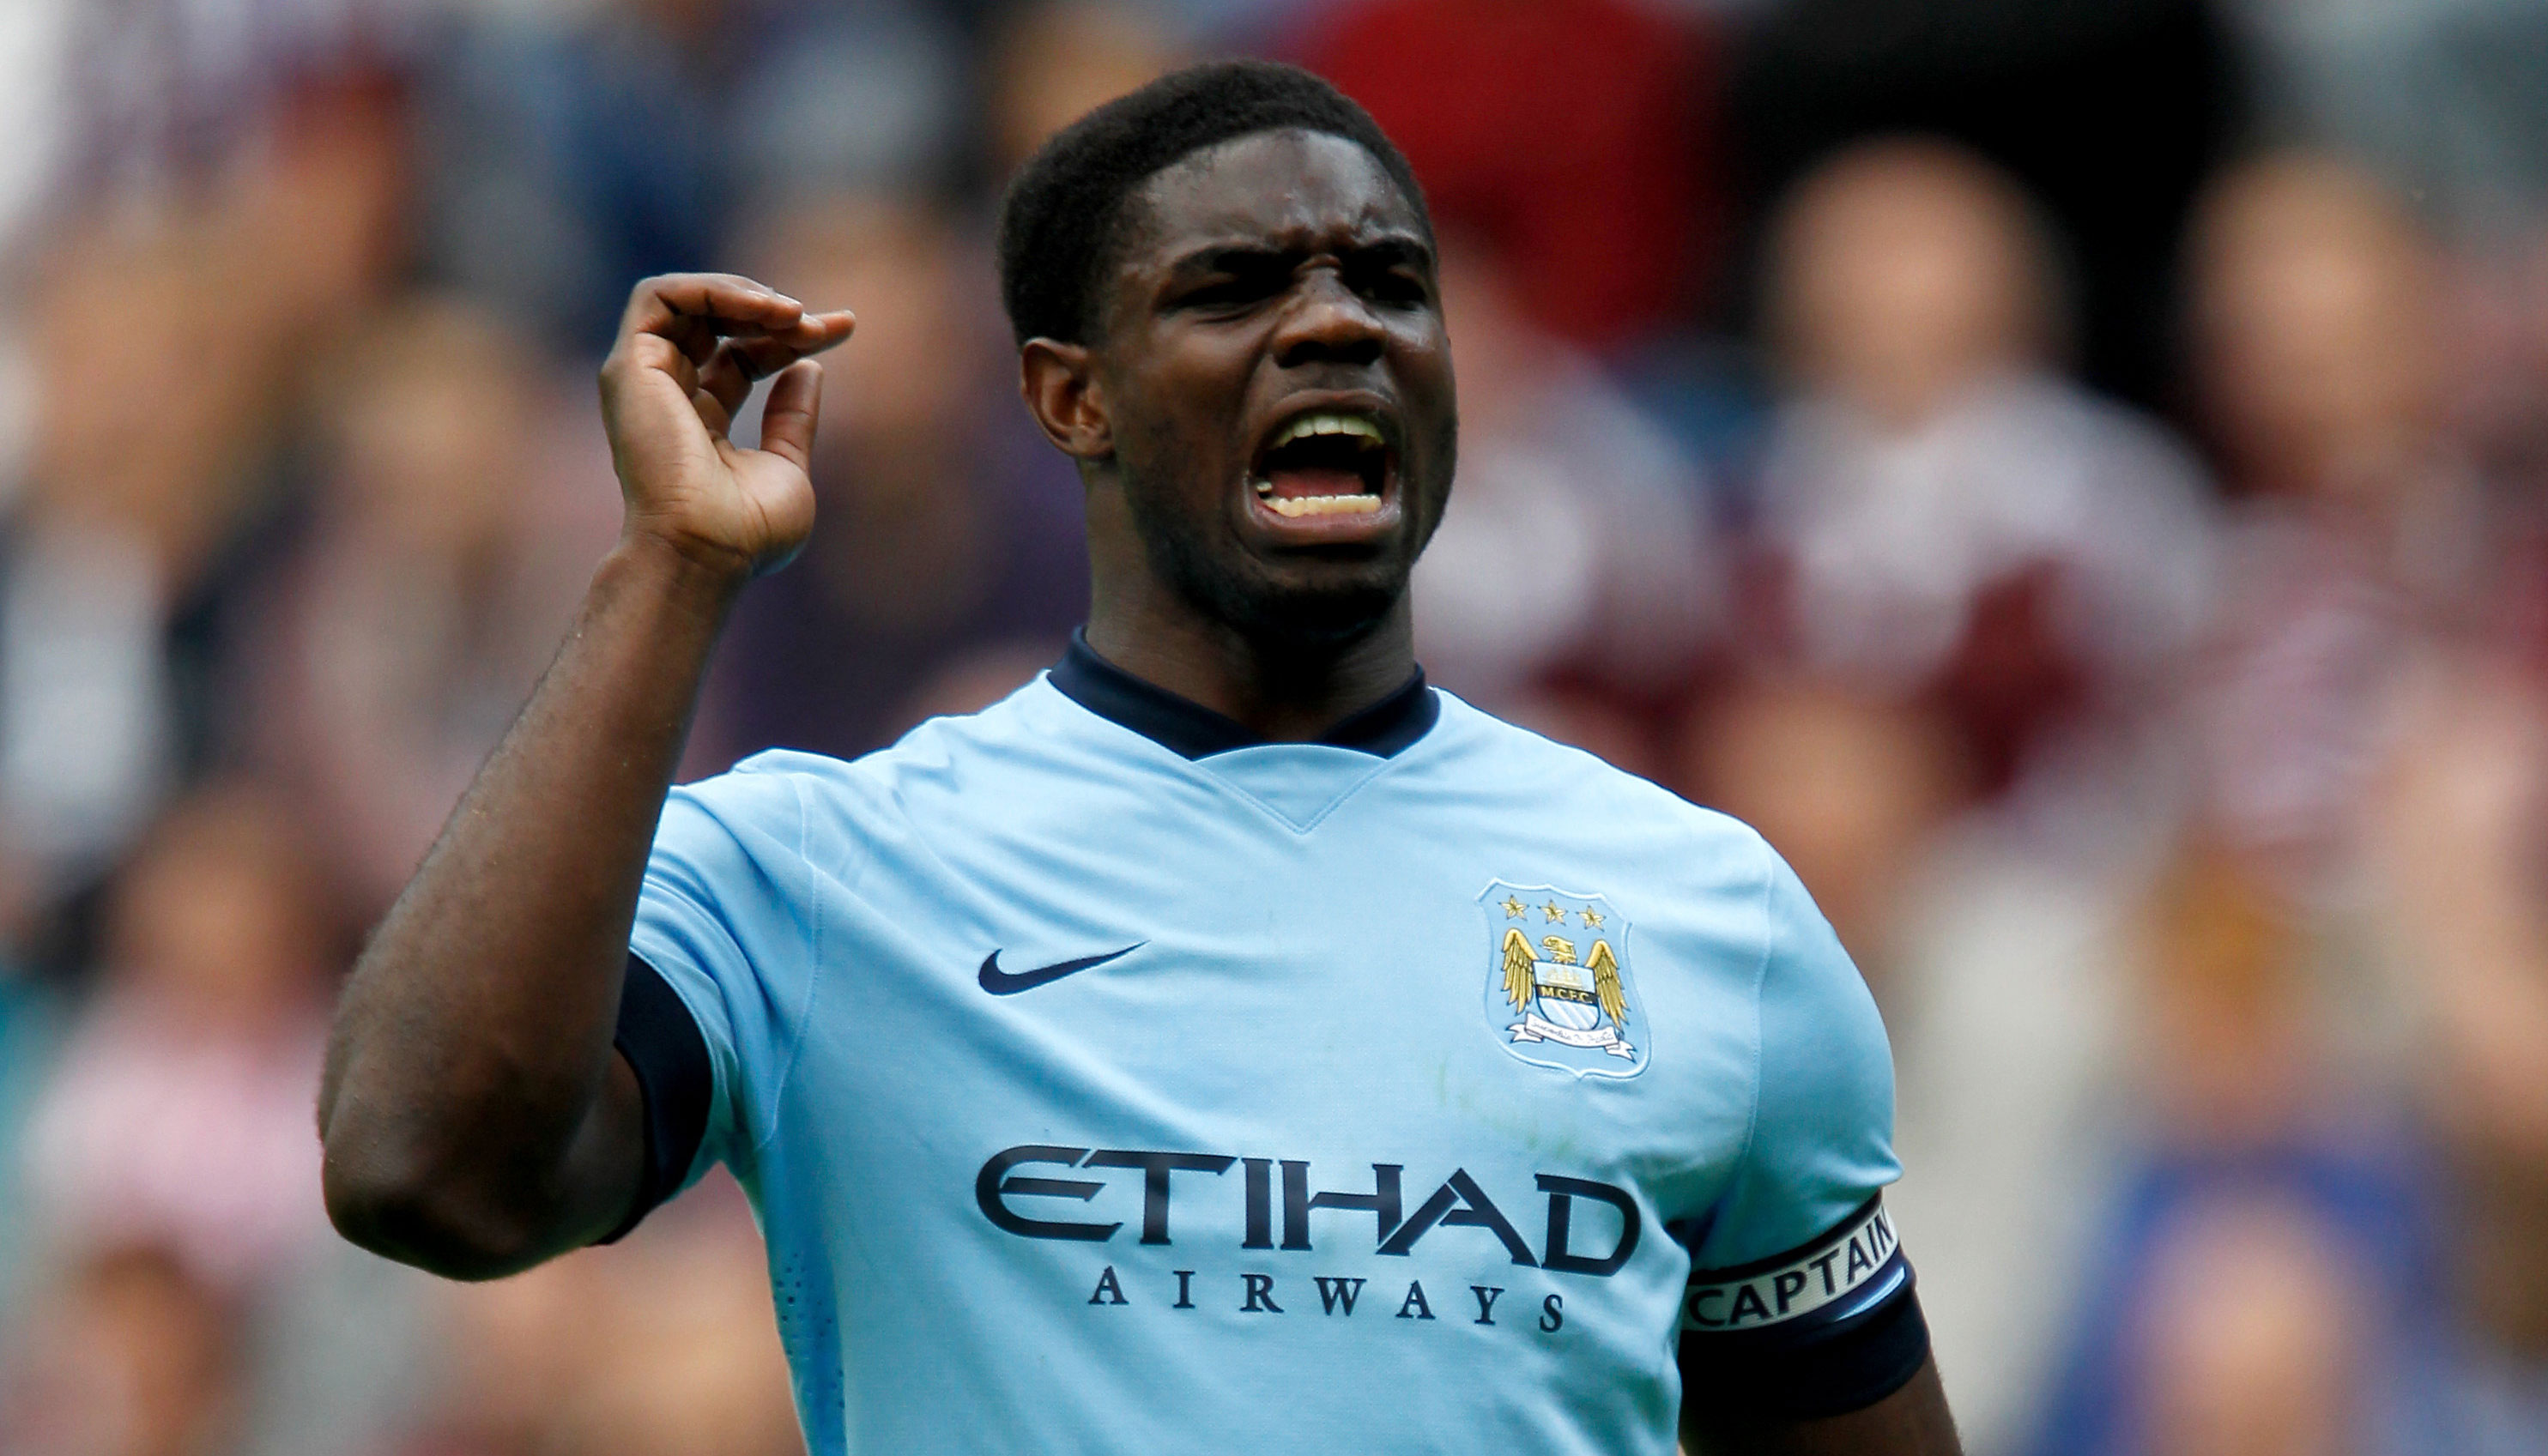 bwin exclusive: Q&A with Micah Richards